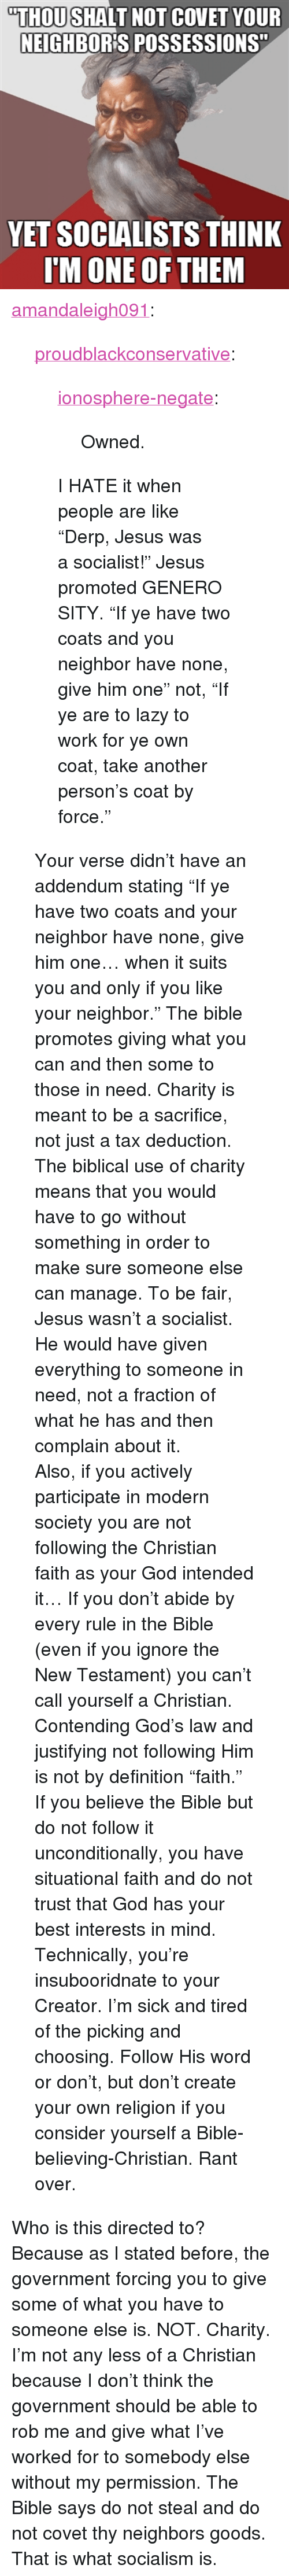 "God, Jesus, and Lazy: ""THOU SHALT NOT COVET YOUR  NEIGHBORIS POSSESSIONS""  YET SOCIALISTS THINK  I'M ONE OF THEM <p><a class=""tumblr_blog"" href=""http://amandaleigh091.tumblr.com/post/34202891089/proudblackconservative-ionosphere-negate"">amandaleigh091</a>:</p> <blockquote> <p><a class=""tumblr_blog"" href=""http://proudblackconservative.tumblr.com/post/34167924442/ionosphere-negate-owned-i-hate-it-when"">proudblackconservative</a>:</p> <blockquote> <p><a class=""tumblr_blog"" href=""http://ionosphere-negate.tumblr.com/post/34167834735"">ionosphere-negate</a>:</p> <blockquote> <p>Owned.</p> </blockquote> <p>I HATE it when people are like ""Derp, Jesus was a socialist!"" Jesus promoted GENEROSITY. ""If ye have two coats and you neighbor have none, give him one"" not, ""If ye are to lazy to work for ye own coat, take another person's coat by force.""</p> </blockquote> <p>Your verse didn't have an addendum stating ""If ye have two coats and your neighbor have none, give him one… when it suits you and only if you like your neighbor."" The bible promotes giving what you can and then some to those in need. Charity is meant to be a sacrifice, not just a tax deduction. The biblical use of charity means that you would have to go without something in order to make sure someone else can manage. To be fair, Jesus wasn't a socialist. He would have given everything to someone in need, not a fraction of what he has and then complain about it.</p> <p>Also, if you actively participate in modern society you are not following the Christian faith as your God intended it… If you don't abide by every rule in the Bible (even if you ignore the New Testament) you can't call yourself a Christian. Contending God's law and justifying not following Him is not by definition ""faith."" If you believe the Bible but do not follow it unconditionally, you have situational faith and do not trust that God has your best interests in mind. Technically, you're insubooridnate to your Creator. I'm sick and tired of the picking and choosing. Follow His word or don't, but don't create your own religion if you consider yourself a Bible-believing-Christian. Rant over.</p> </blockquote> <p>Who is this directed to? Because as I stated before, the government forcing you to give some of what you have to someone else is. NOT. Charity. I&rsquo;m not any less of a Christian because I don&rsquo;t think the government should be able to rob me and give what I&rsquo;ve worked for to somebody else without my permission. The Bible says do not steal and do not covet thy neighbors goods. That is what socialism is. </p>"